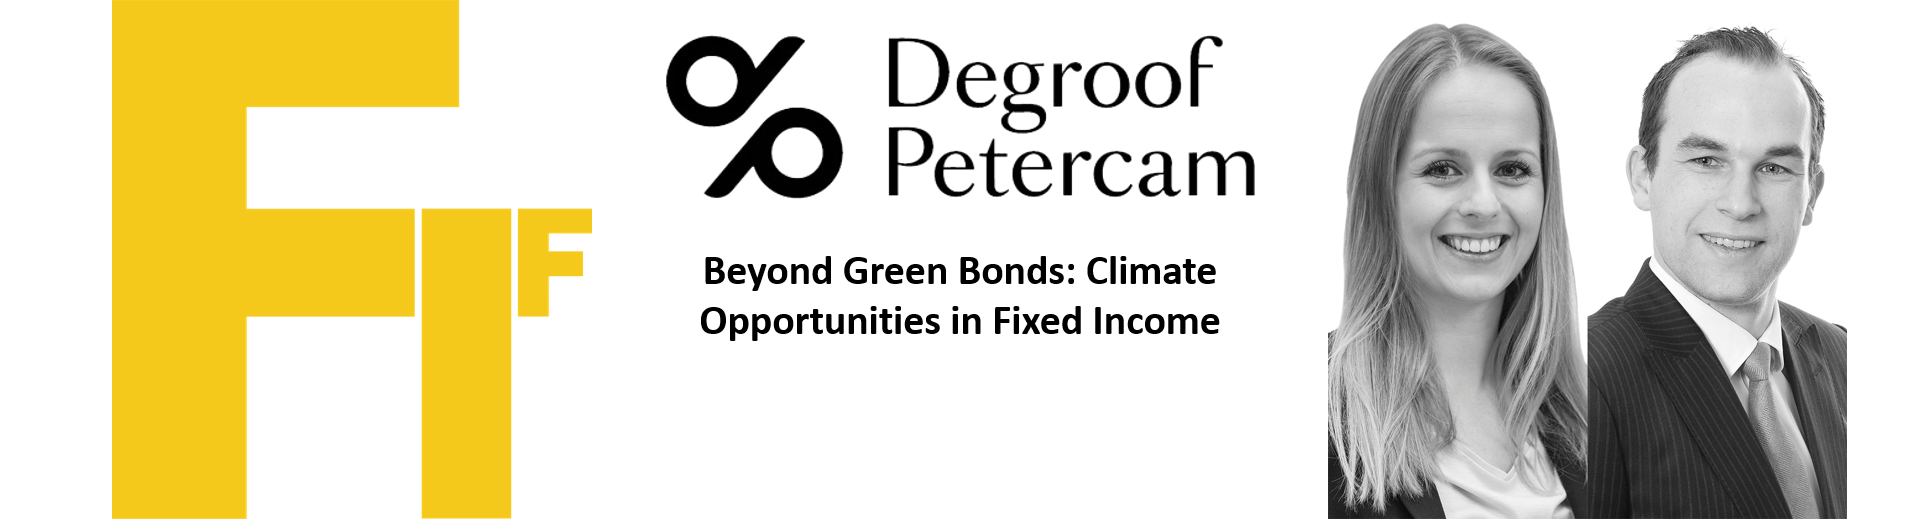 Beyond Green Bonds: Climate Opportunities in Fixed Income (Degroof Petercam Asset Management)